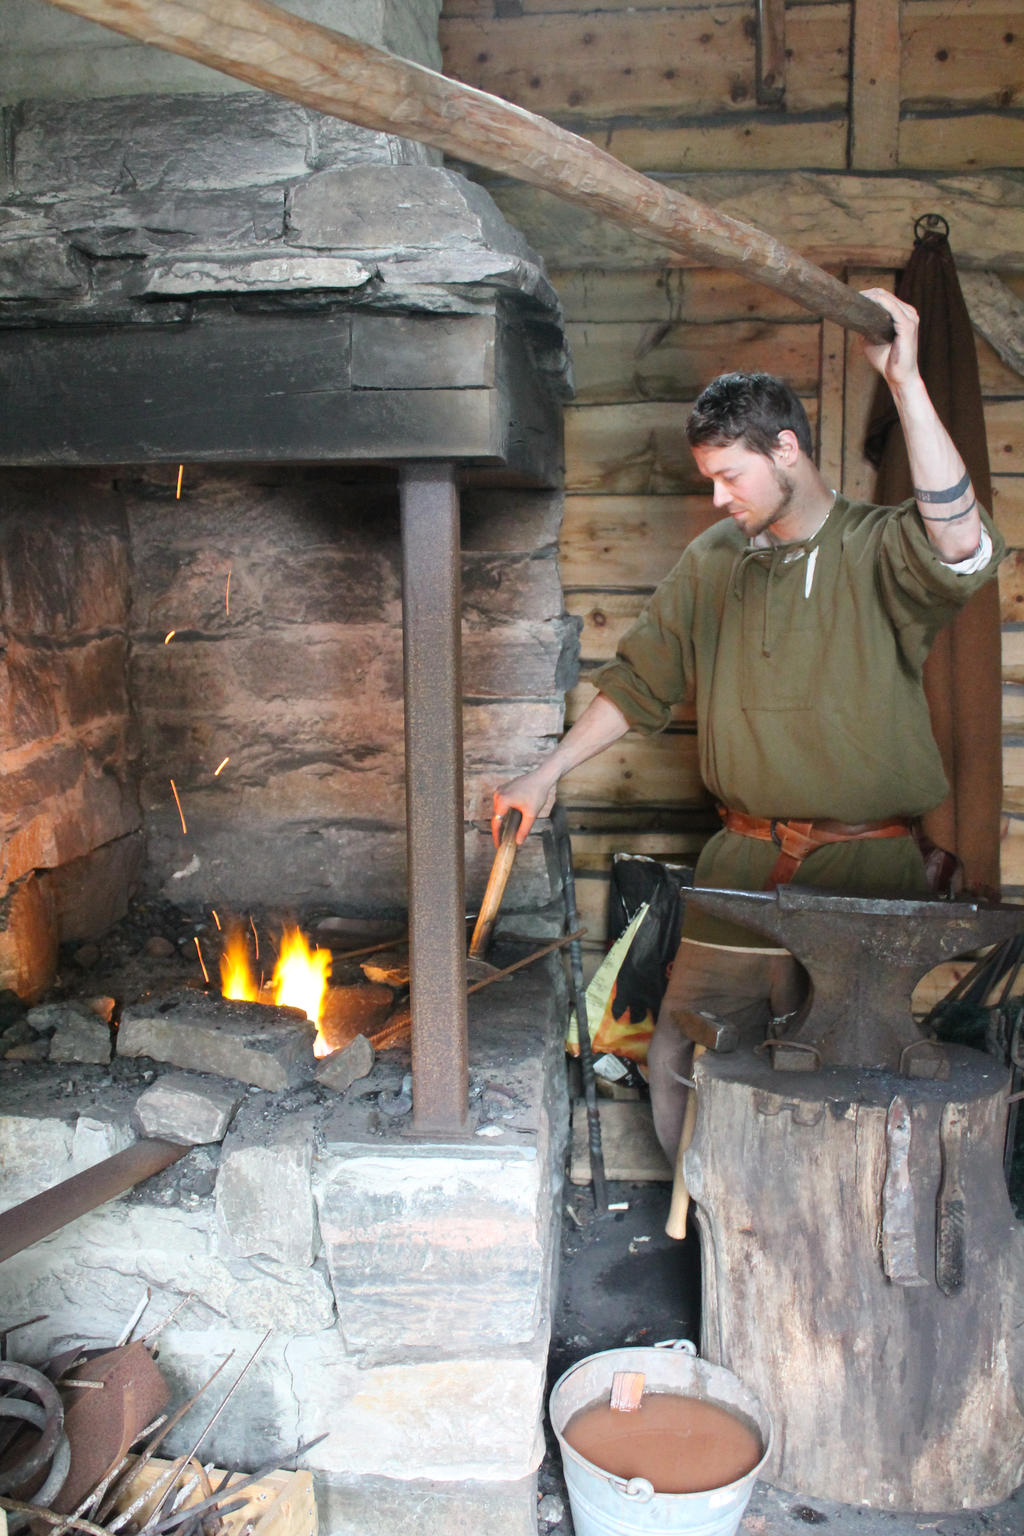 Viking blacksmith by Blodsravn